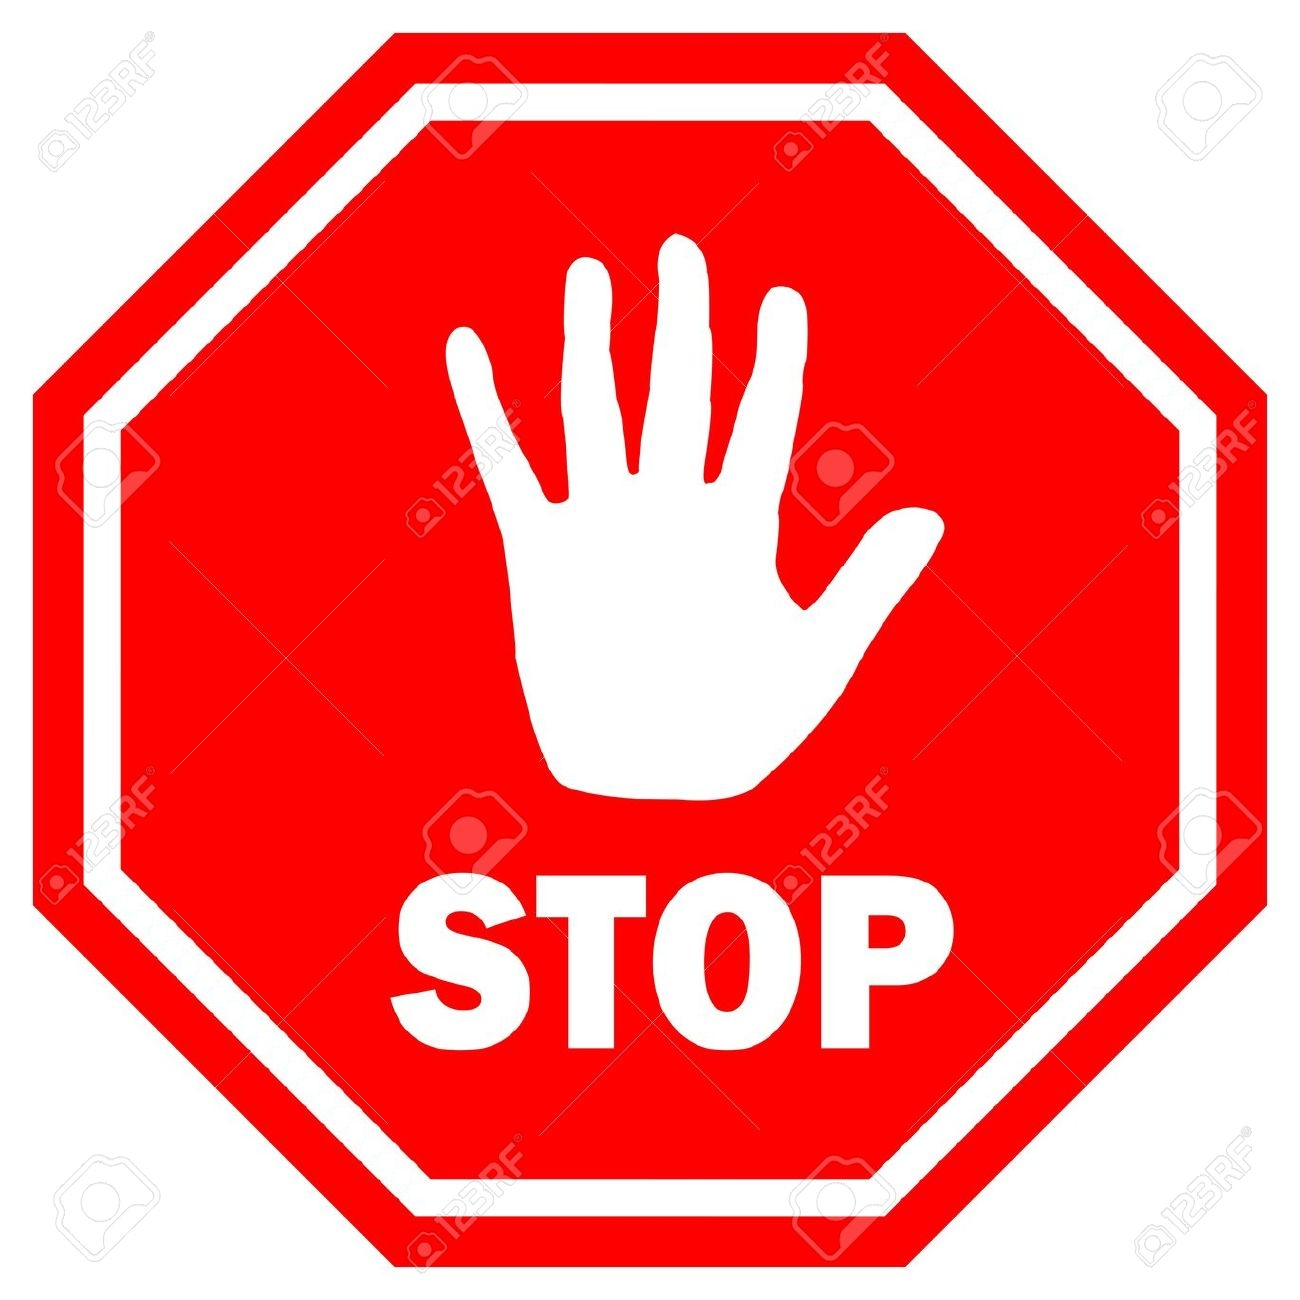 2113418038-stop-sign-clip-art- .-2113418038-stop-sign-clip-art- .-11